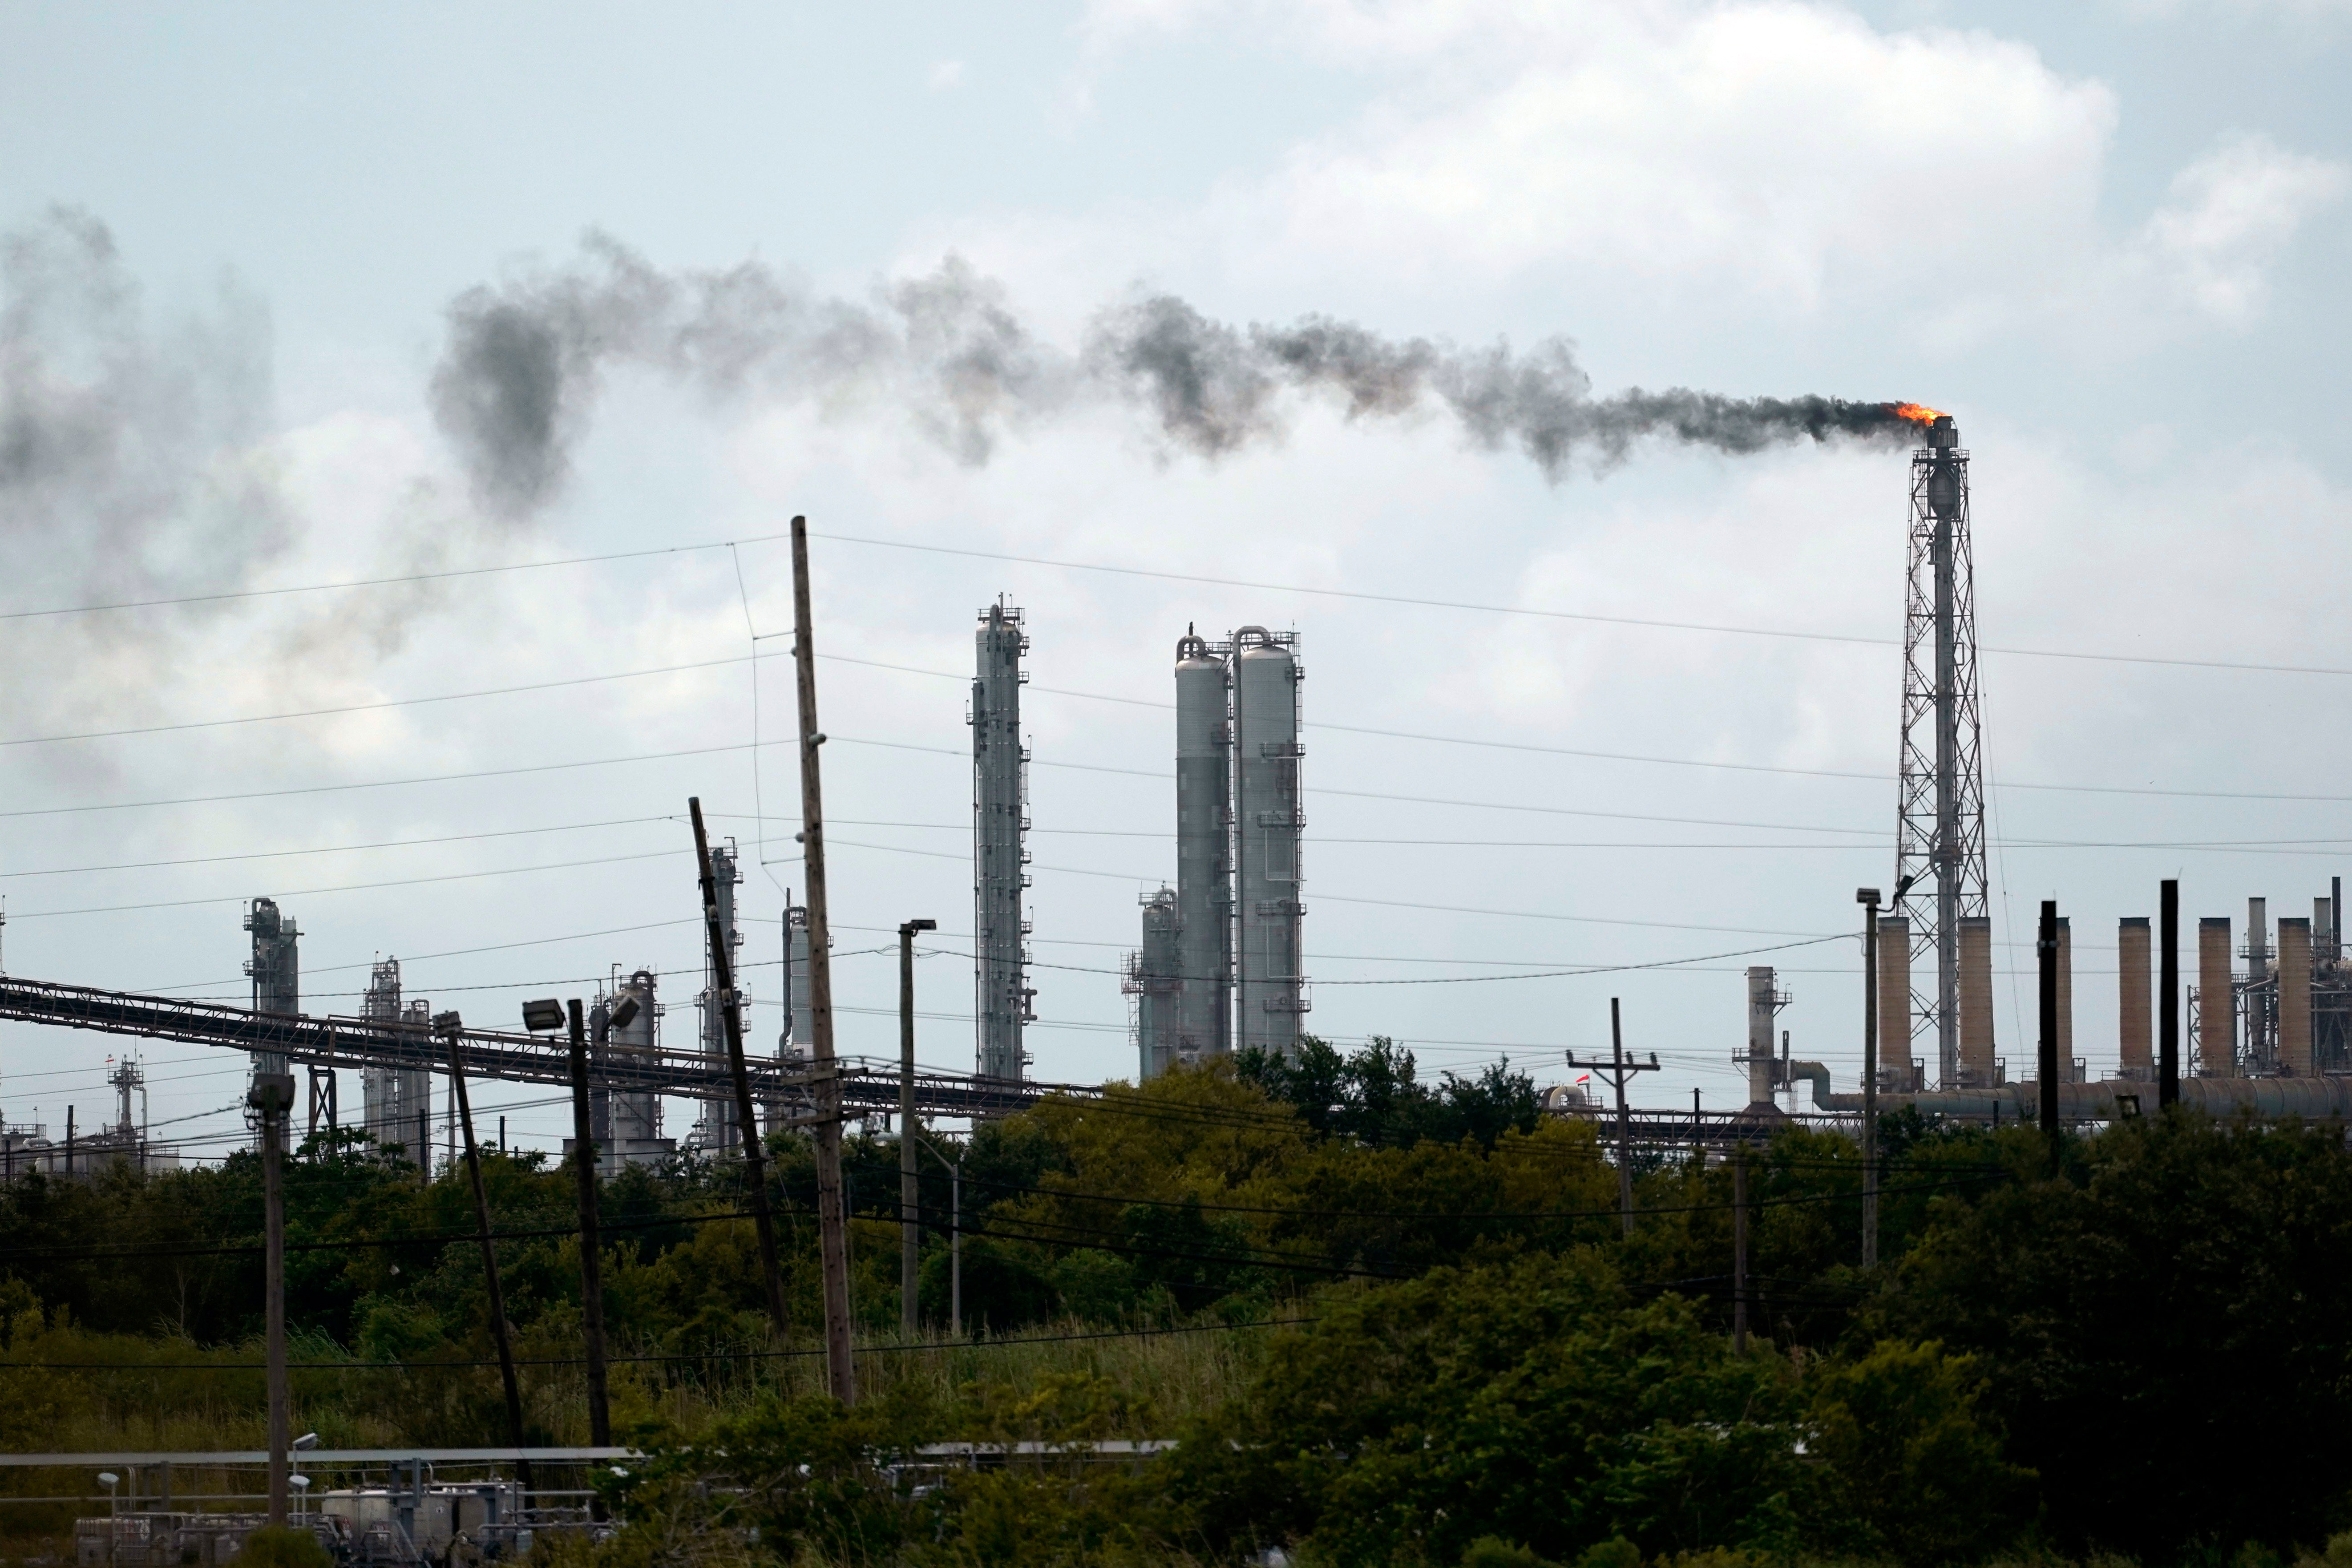 Oil and gas industry assesses damage at refineries, plants thumbnail